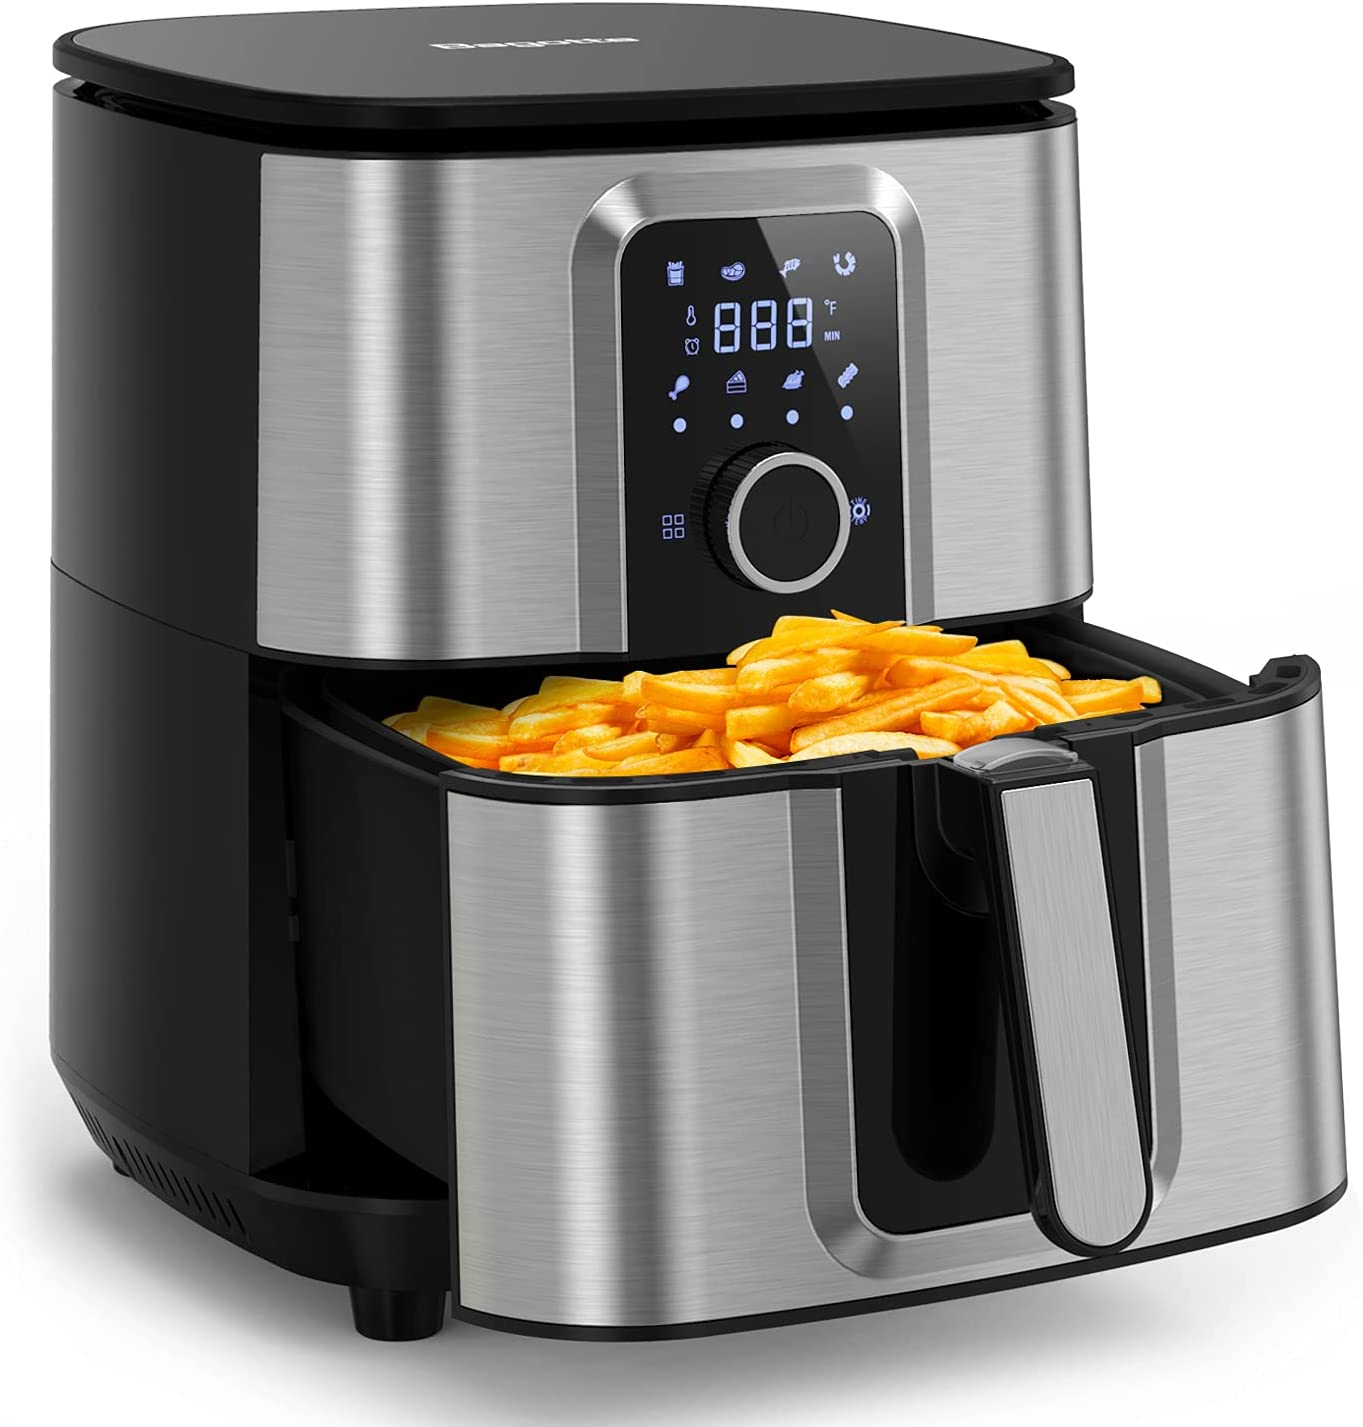 Air Fryer, 8 One-Touch Programs, 5.8 Quart, Stainless Steel Electric Hot Large Air Fryers Oven Oilless Cooker, Knob Controls & Touch Screen, 1700W, 100 Recipes